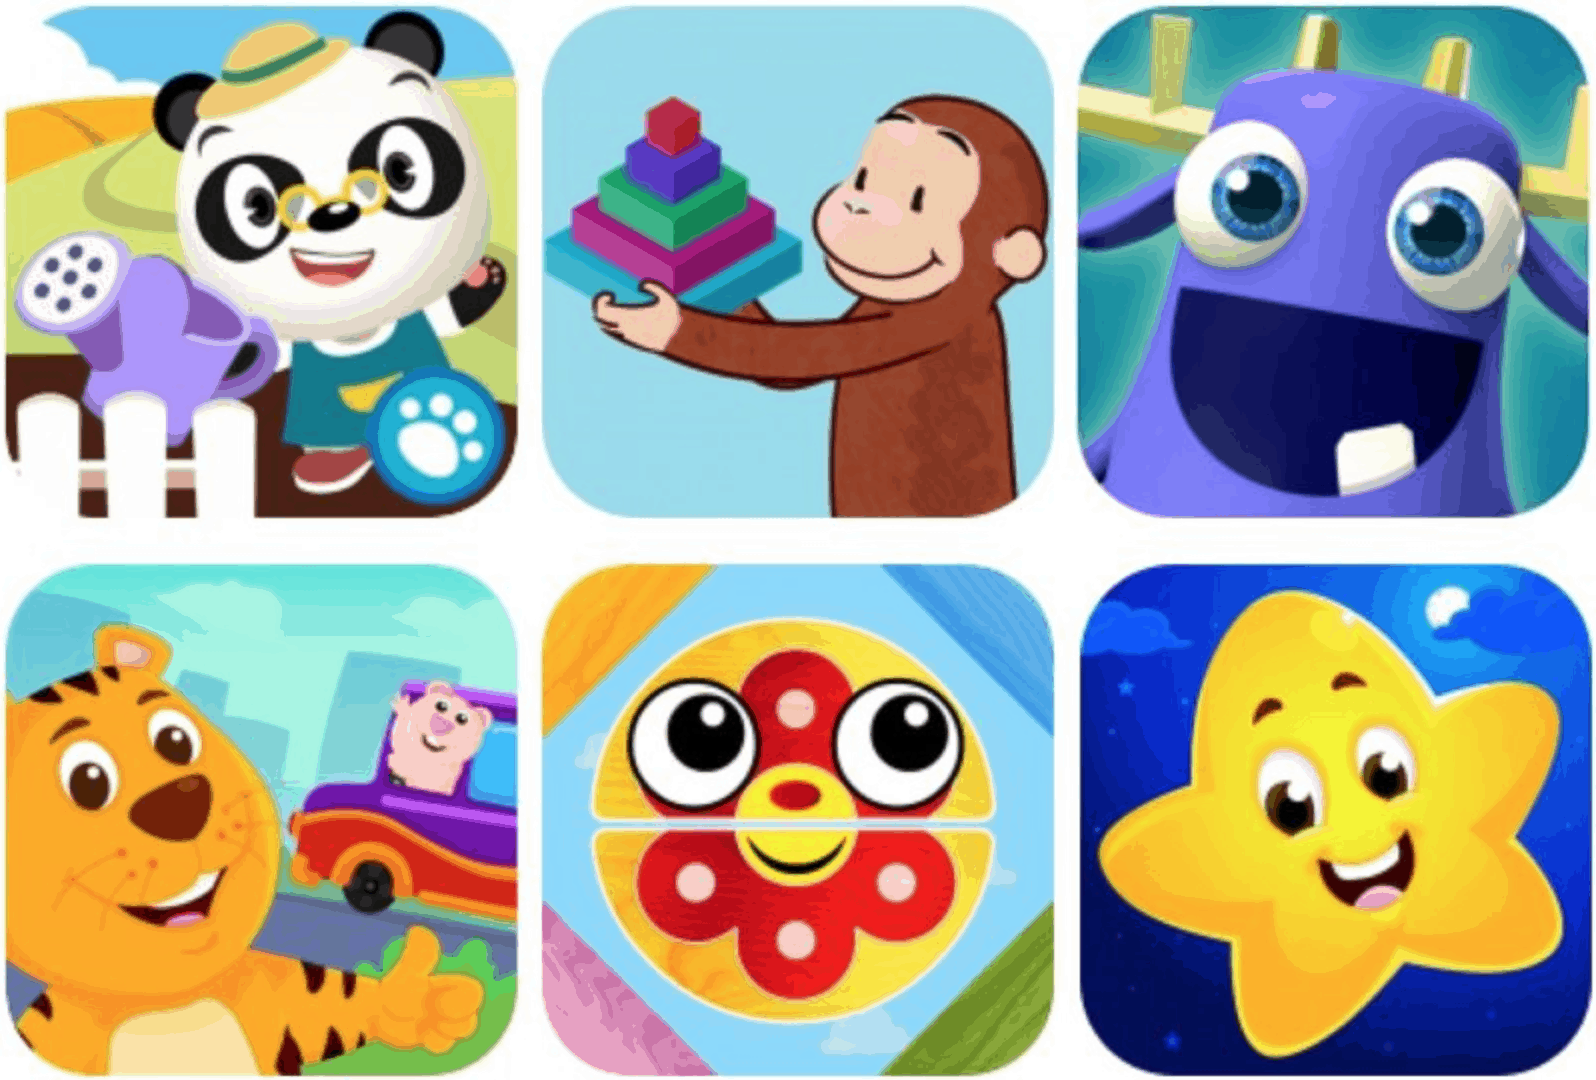 Sign in With Apple and Guidelines to 3rd Party Kids Apps Relaxed